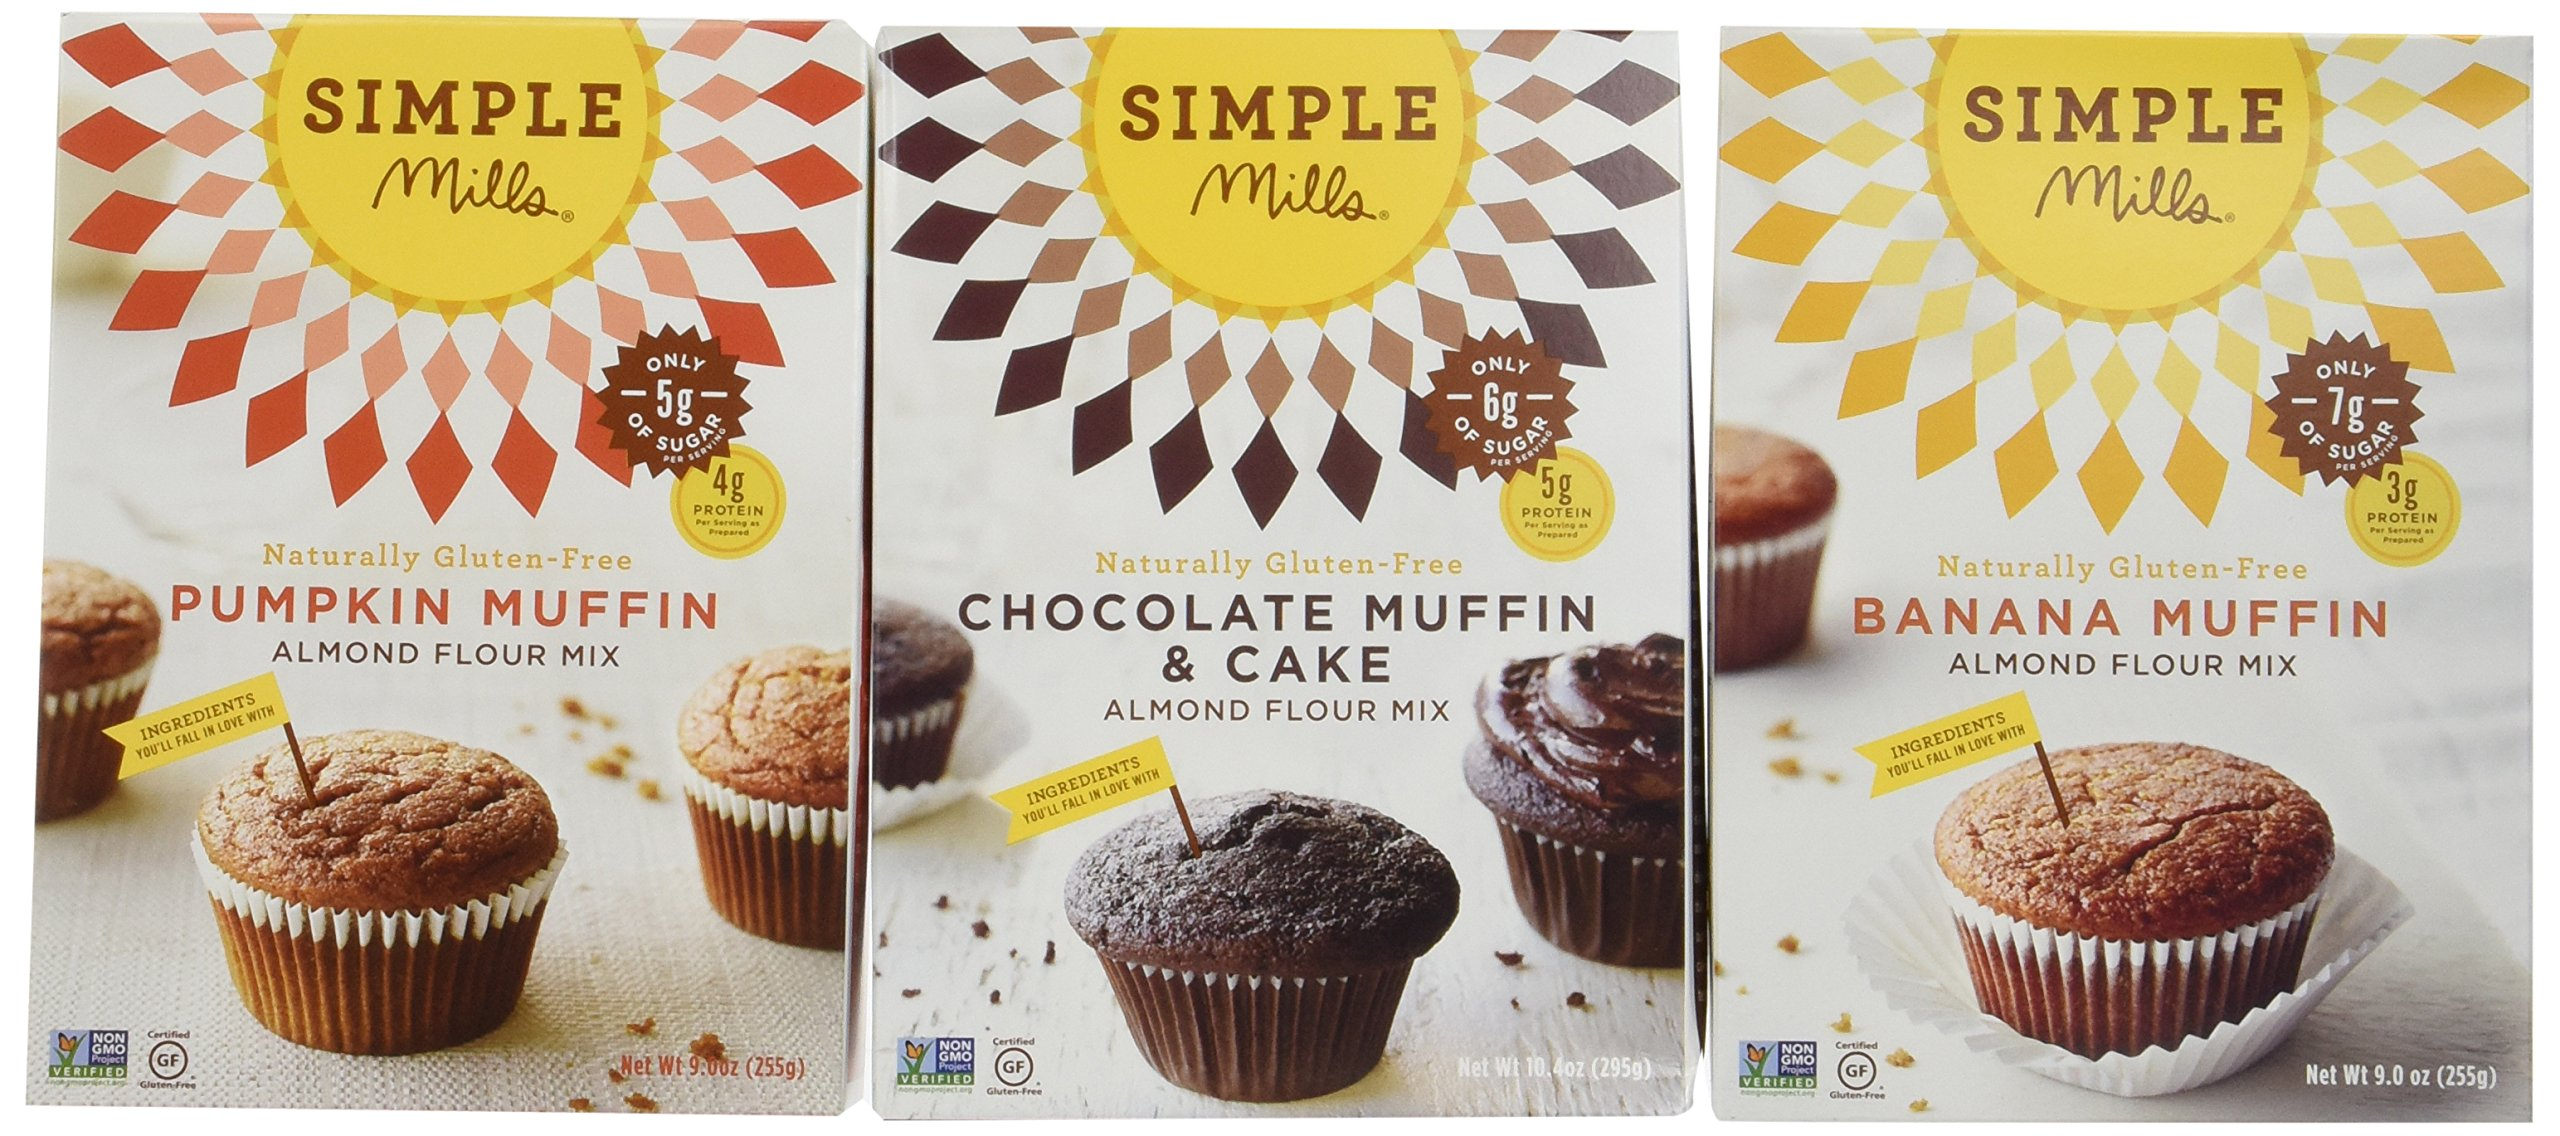 Simple Mills Naturally Gluten-Free Almond Flour Muffin Mixes, Pumpkin Muffin, Chocolate Muffin & Cake and Banana Muffin, 4 oz, 3 Count